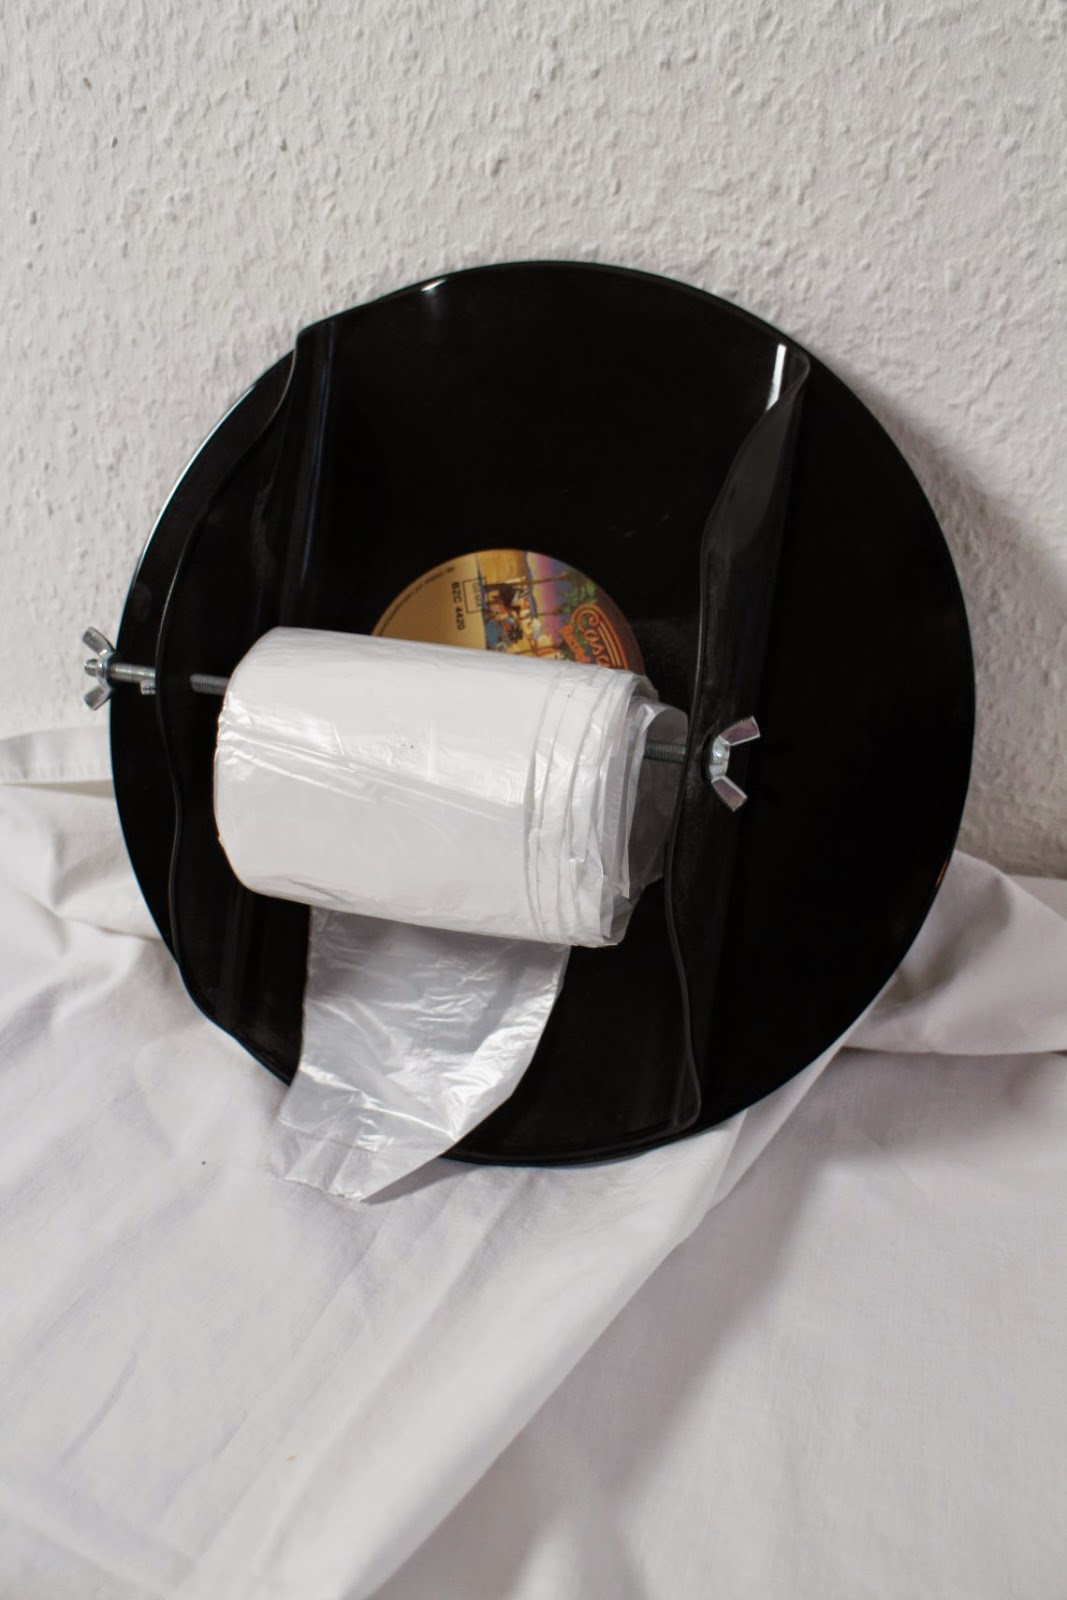 Upcycling 2.0 Plastiktütenabroller aus Schallplatten / Plastic bag dispenser made of vinyl records